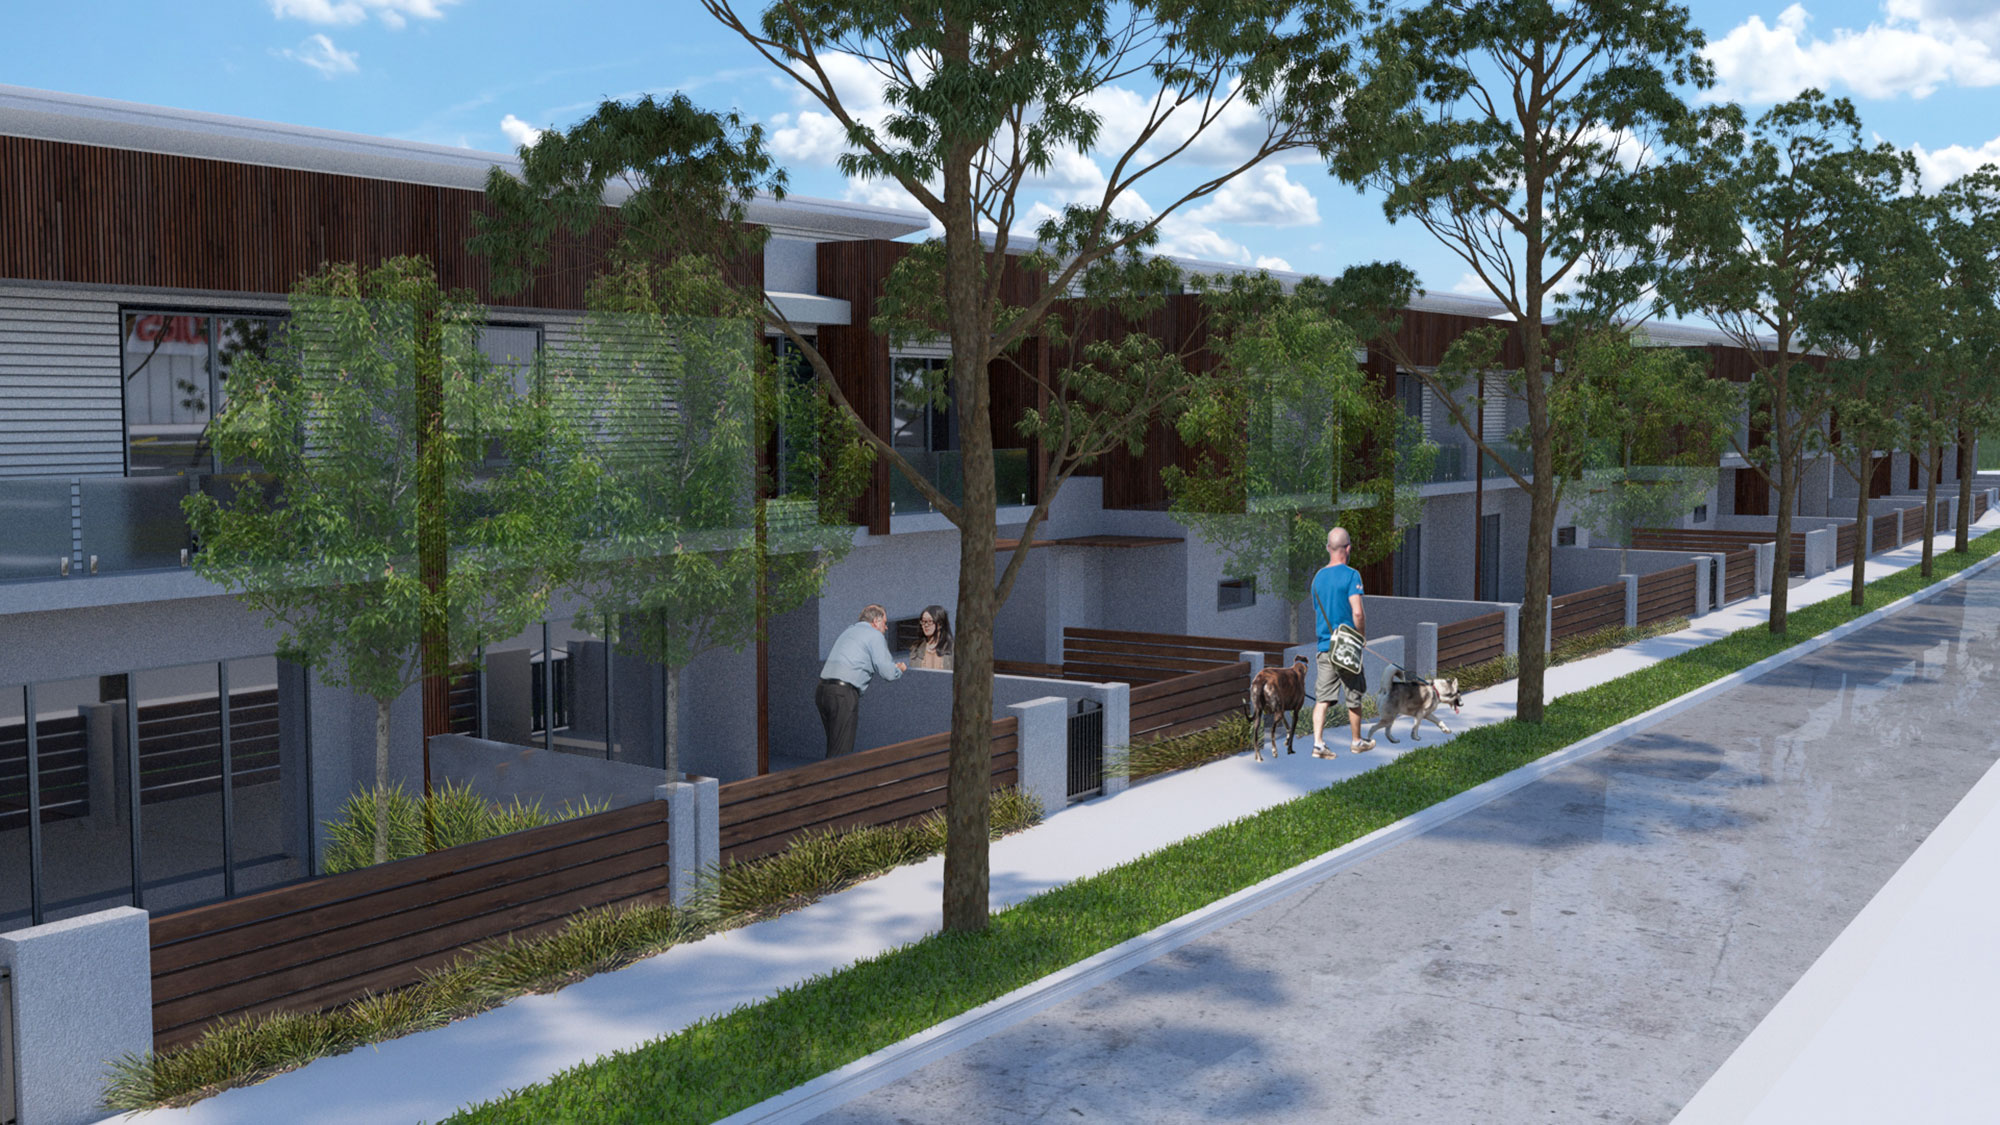 Internal Street view of Bonnells Bay development